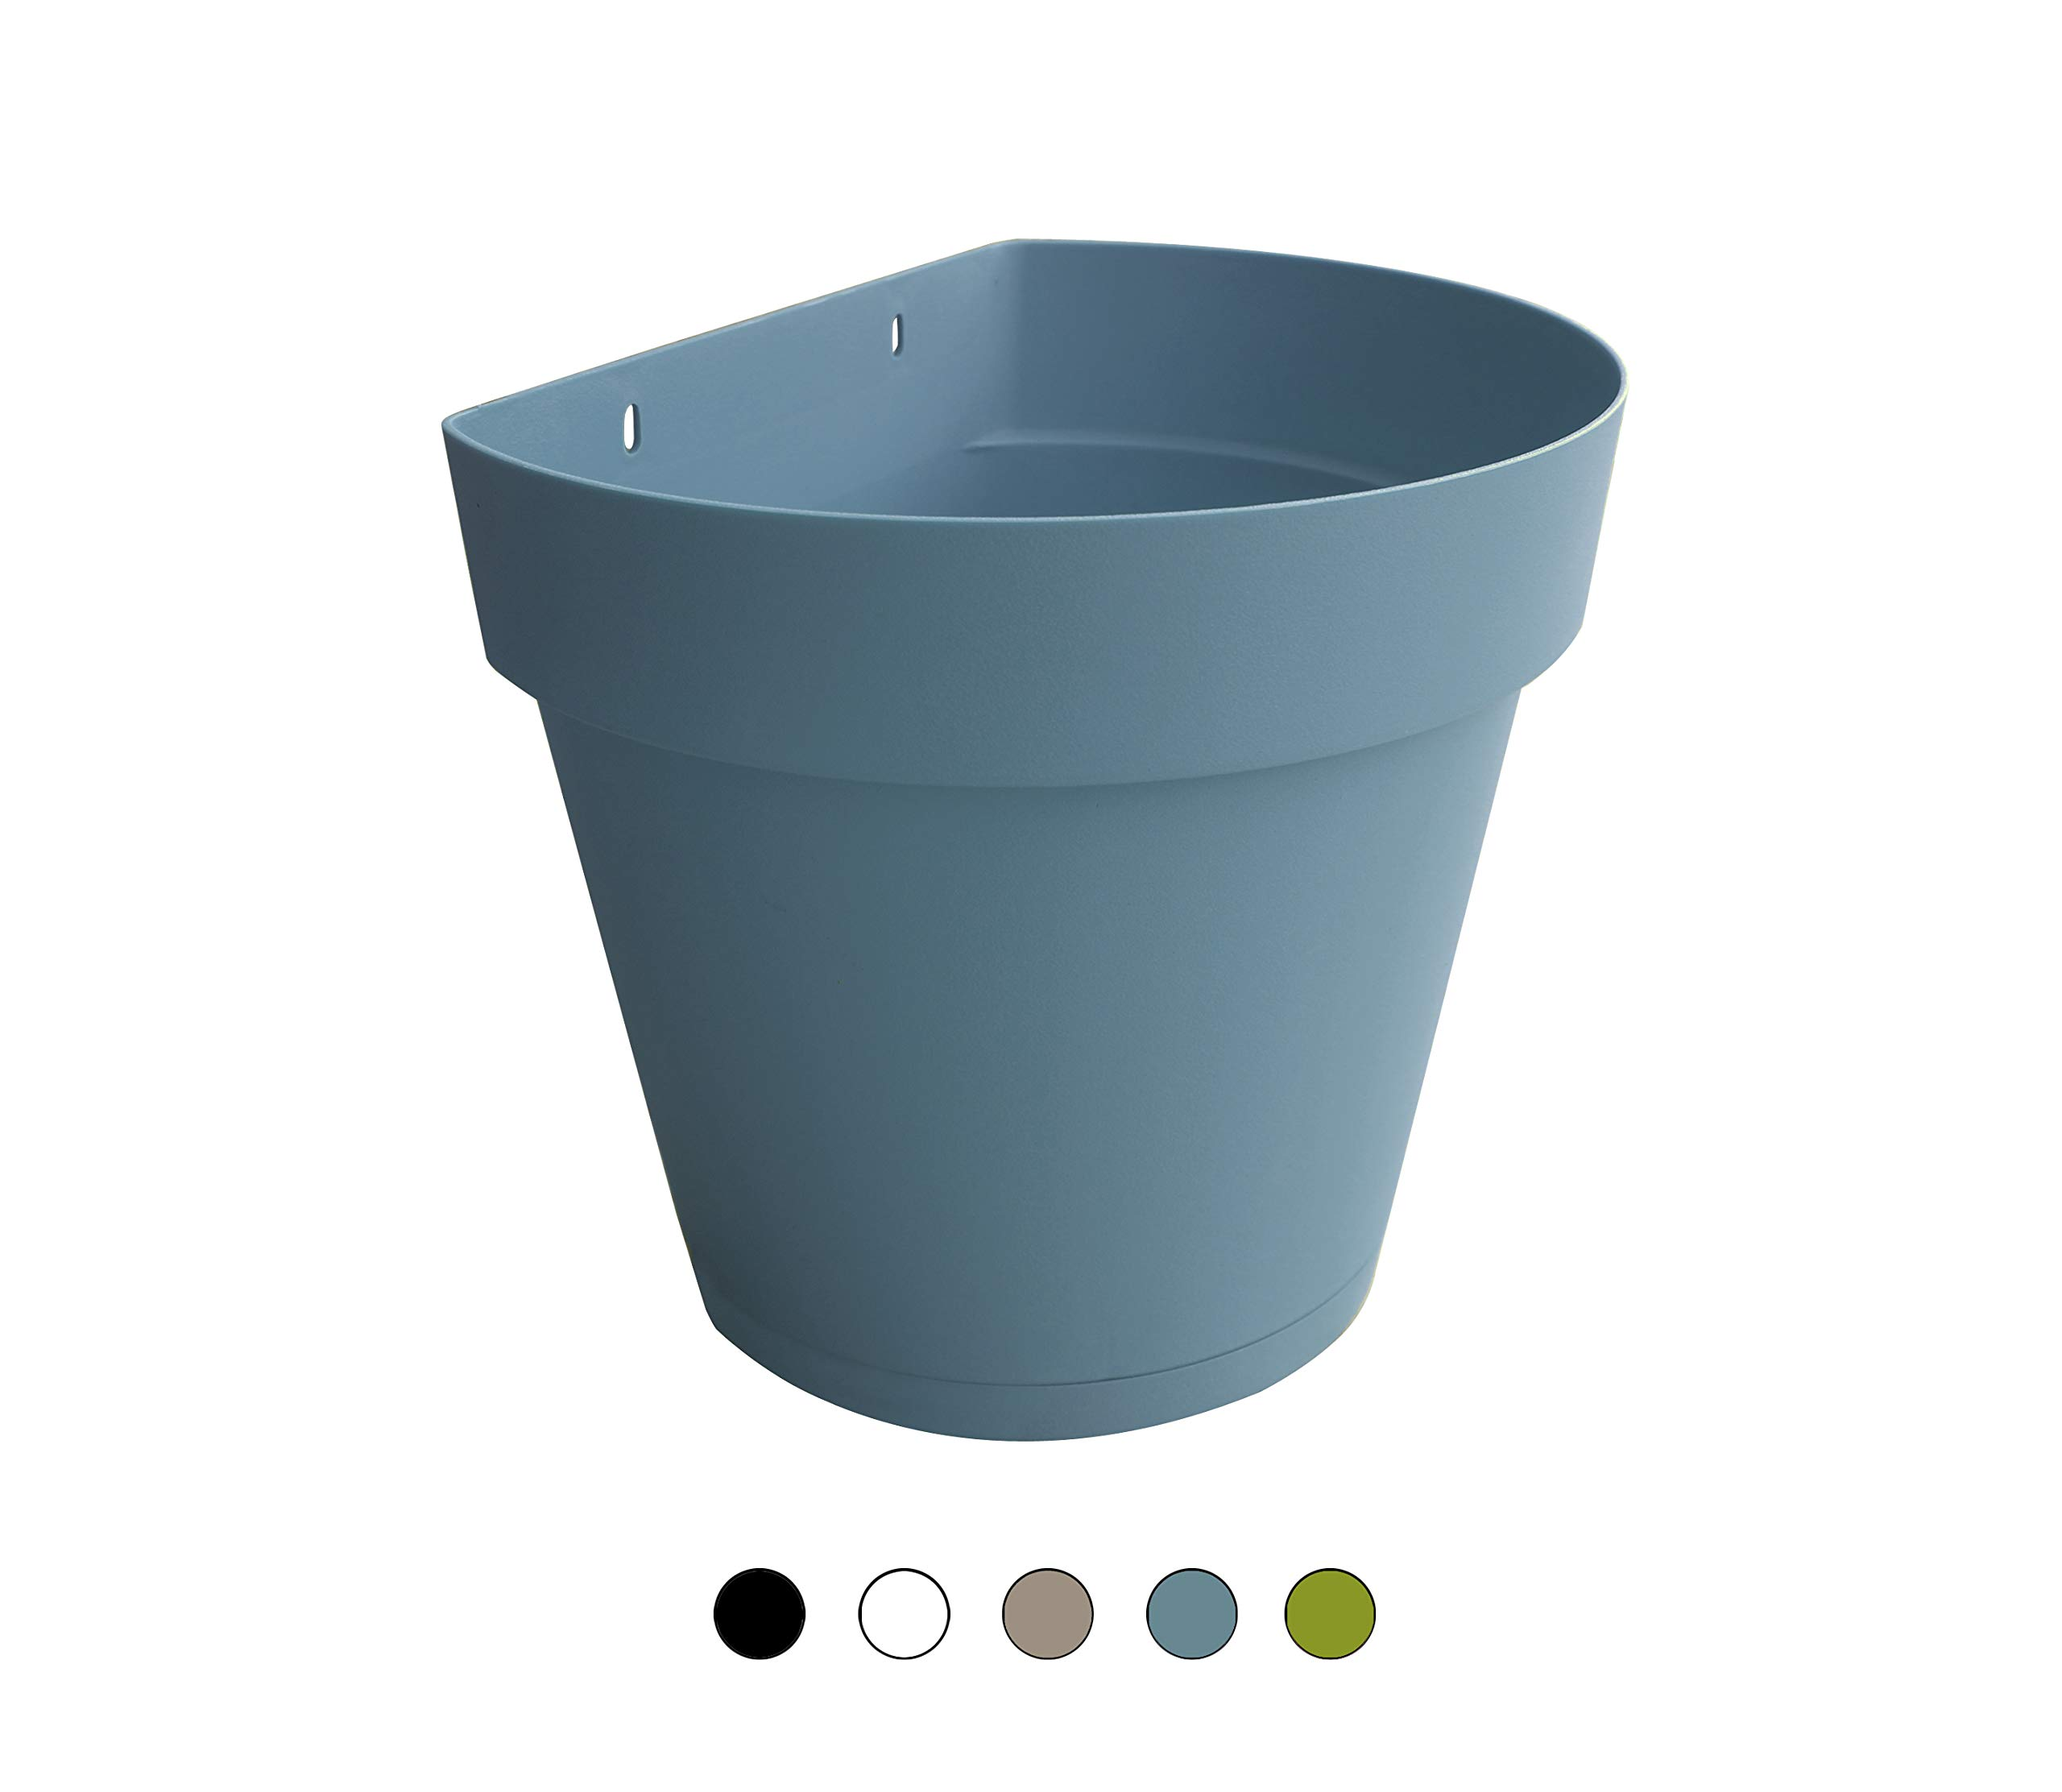 TABOR TOOLS Plastic Wall Planter Pot for Vertical Flower Garden, Living Wall or Kitchen Herbs, with Attached Saucer (8.5'', Pastel Blue- VEM605A)